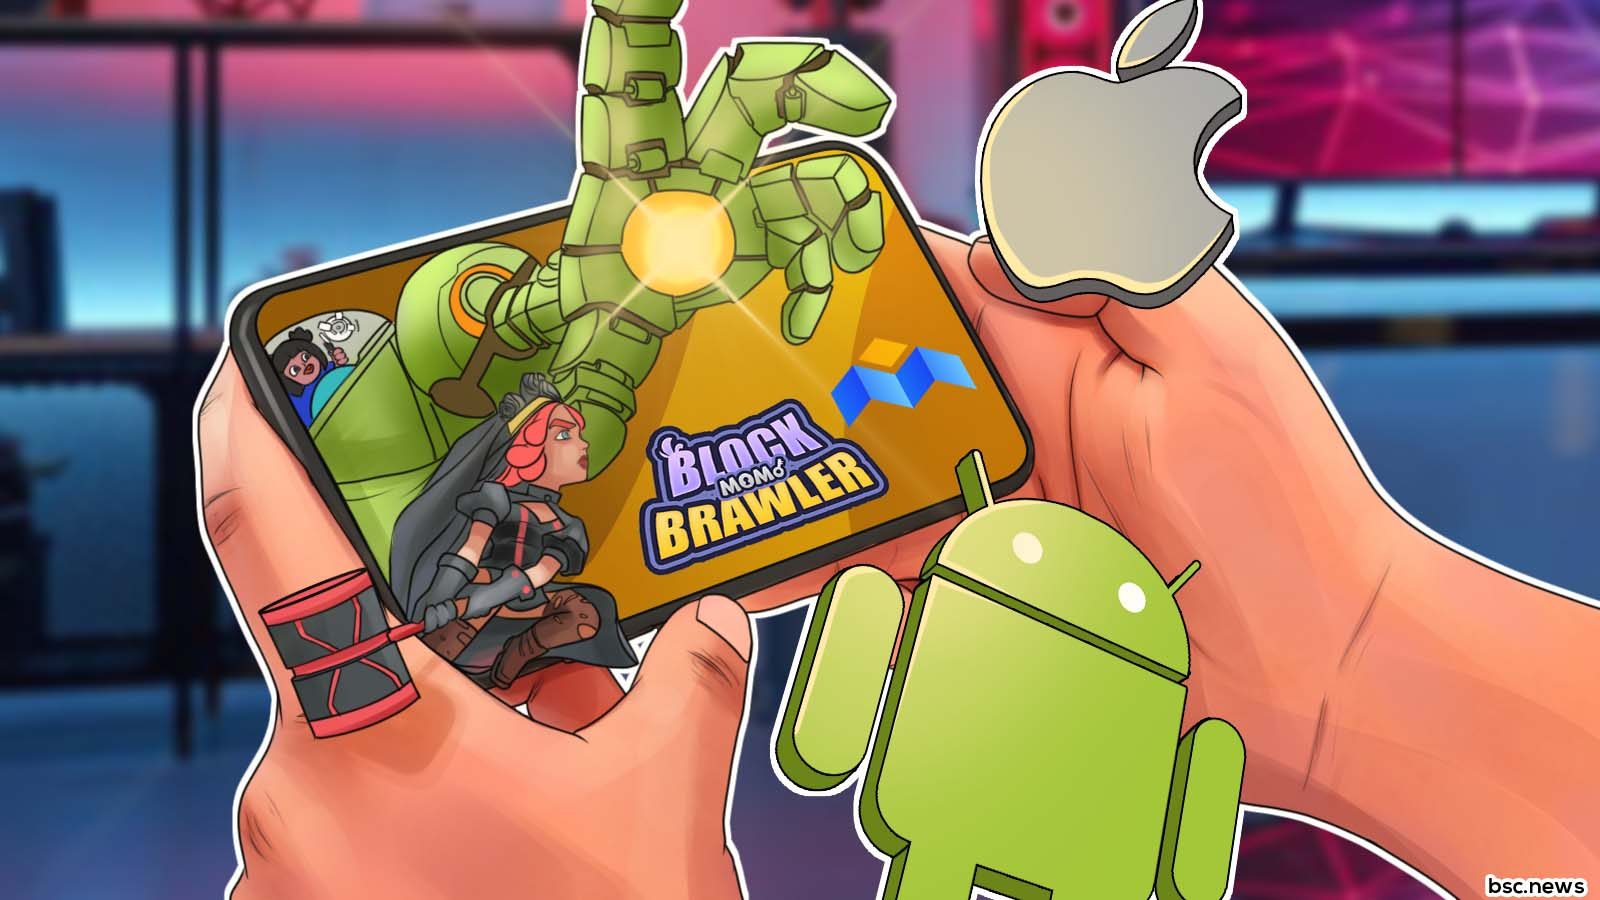 Block Brawler From MoBox Launches on Mobile for Android, iOS